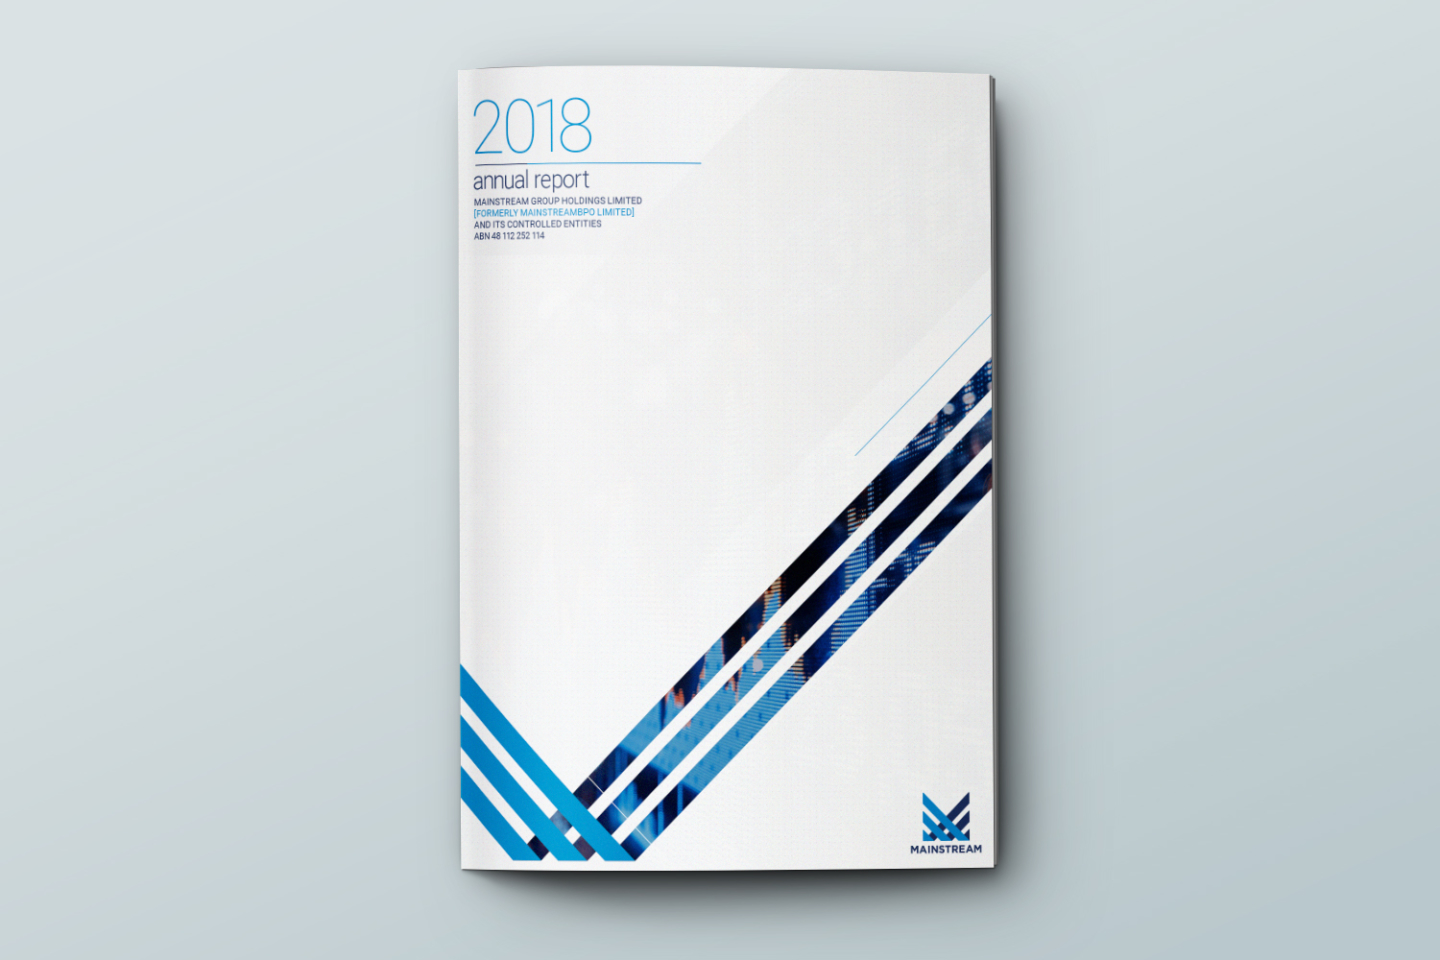 Mainstream Group: Annual Report 2018